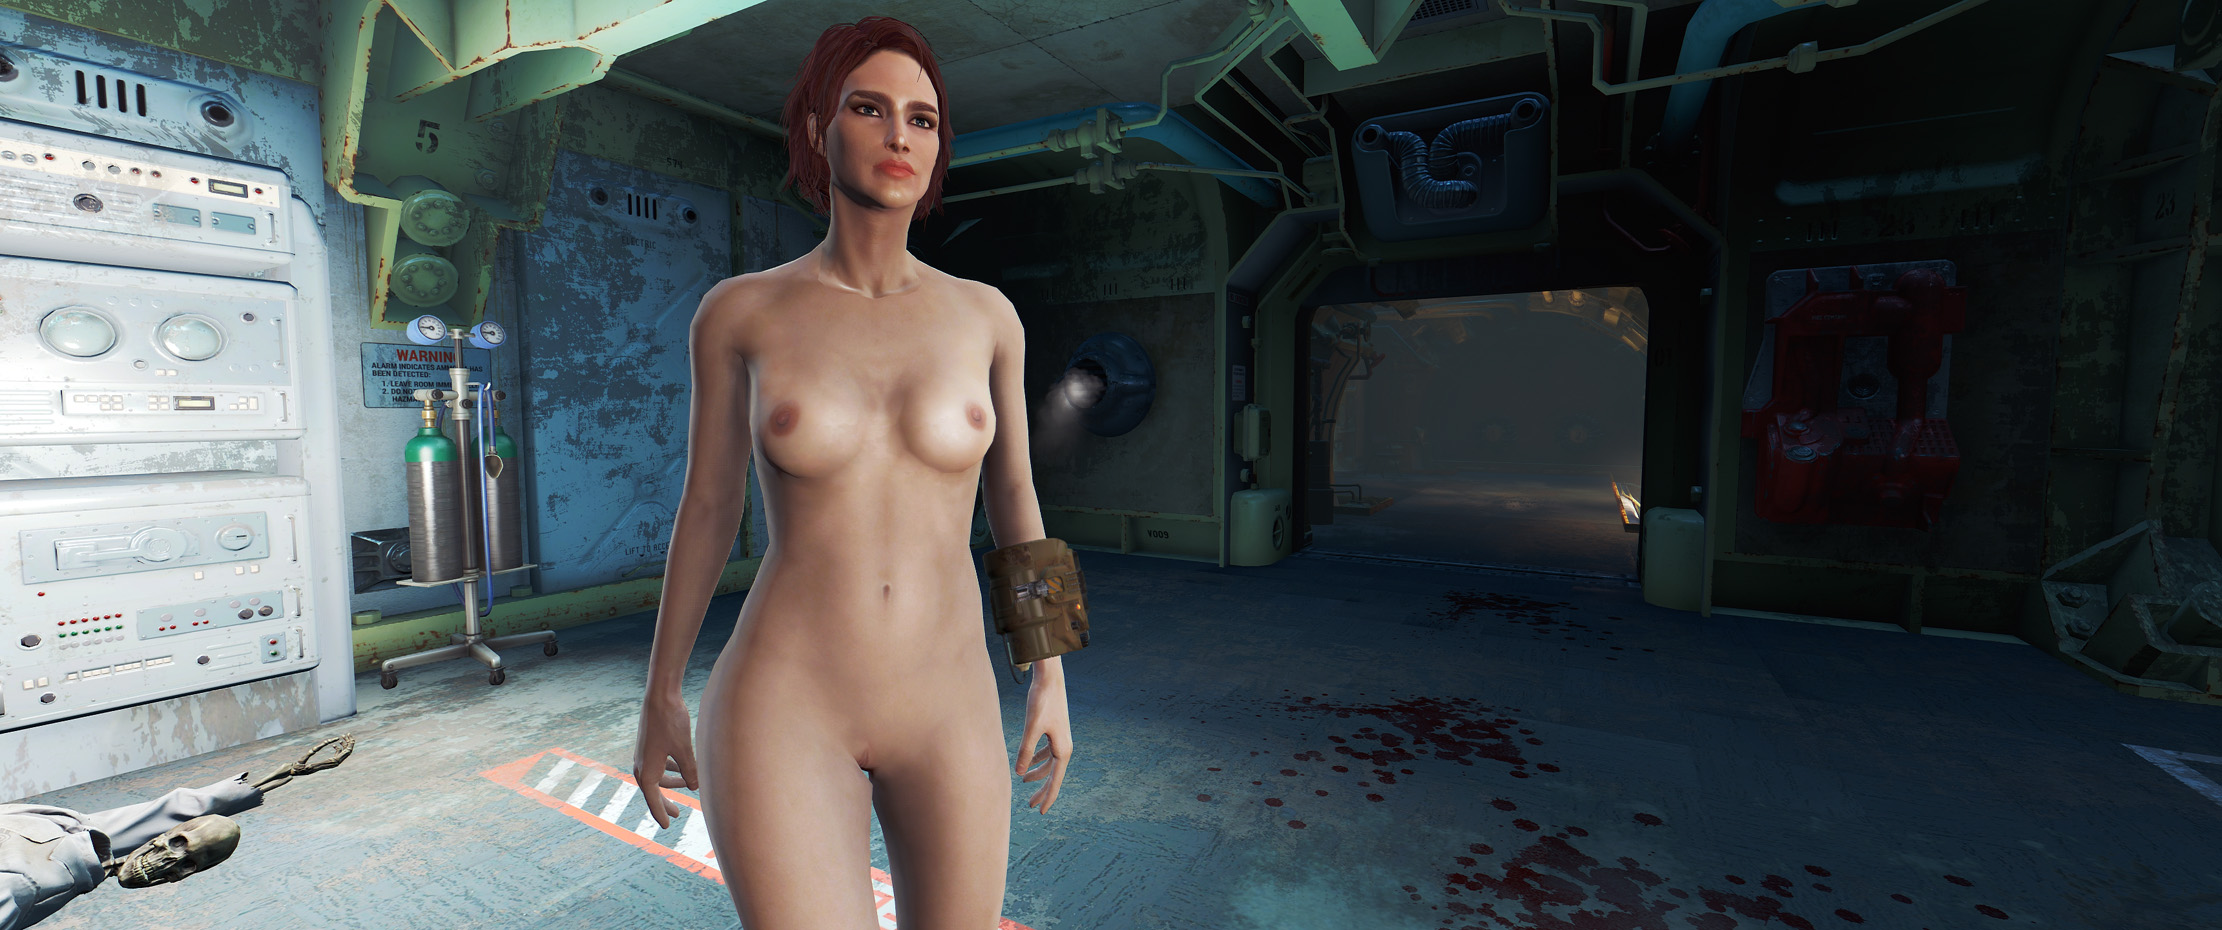 Fallout nude tentacle anime picture